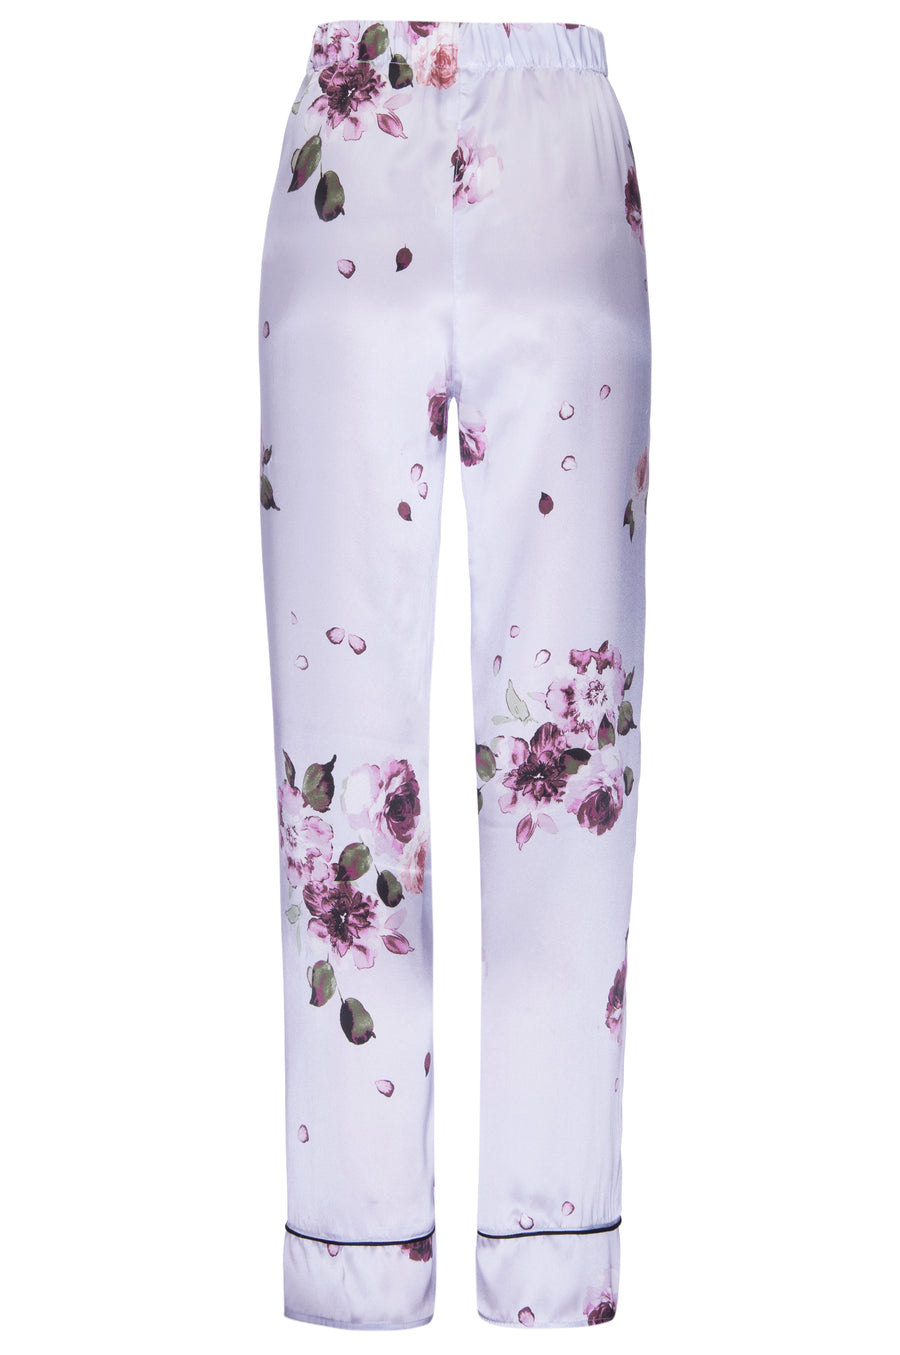 Silk Charmeuse PJ Pants: Light Blue Floral Print